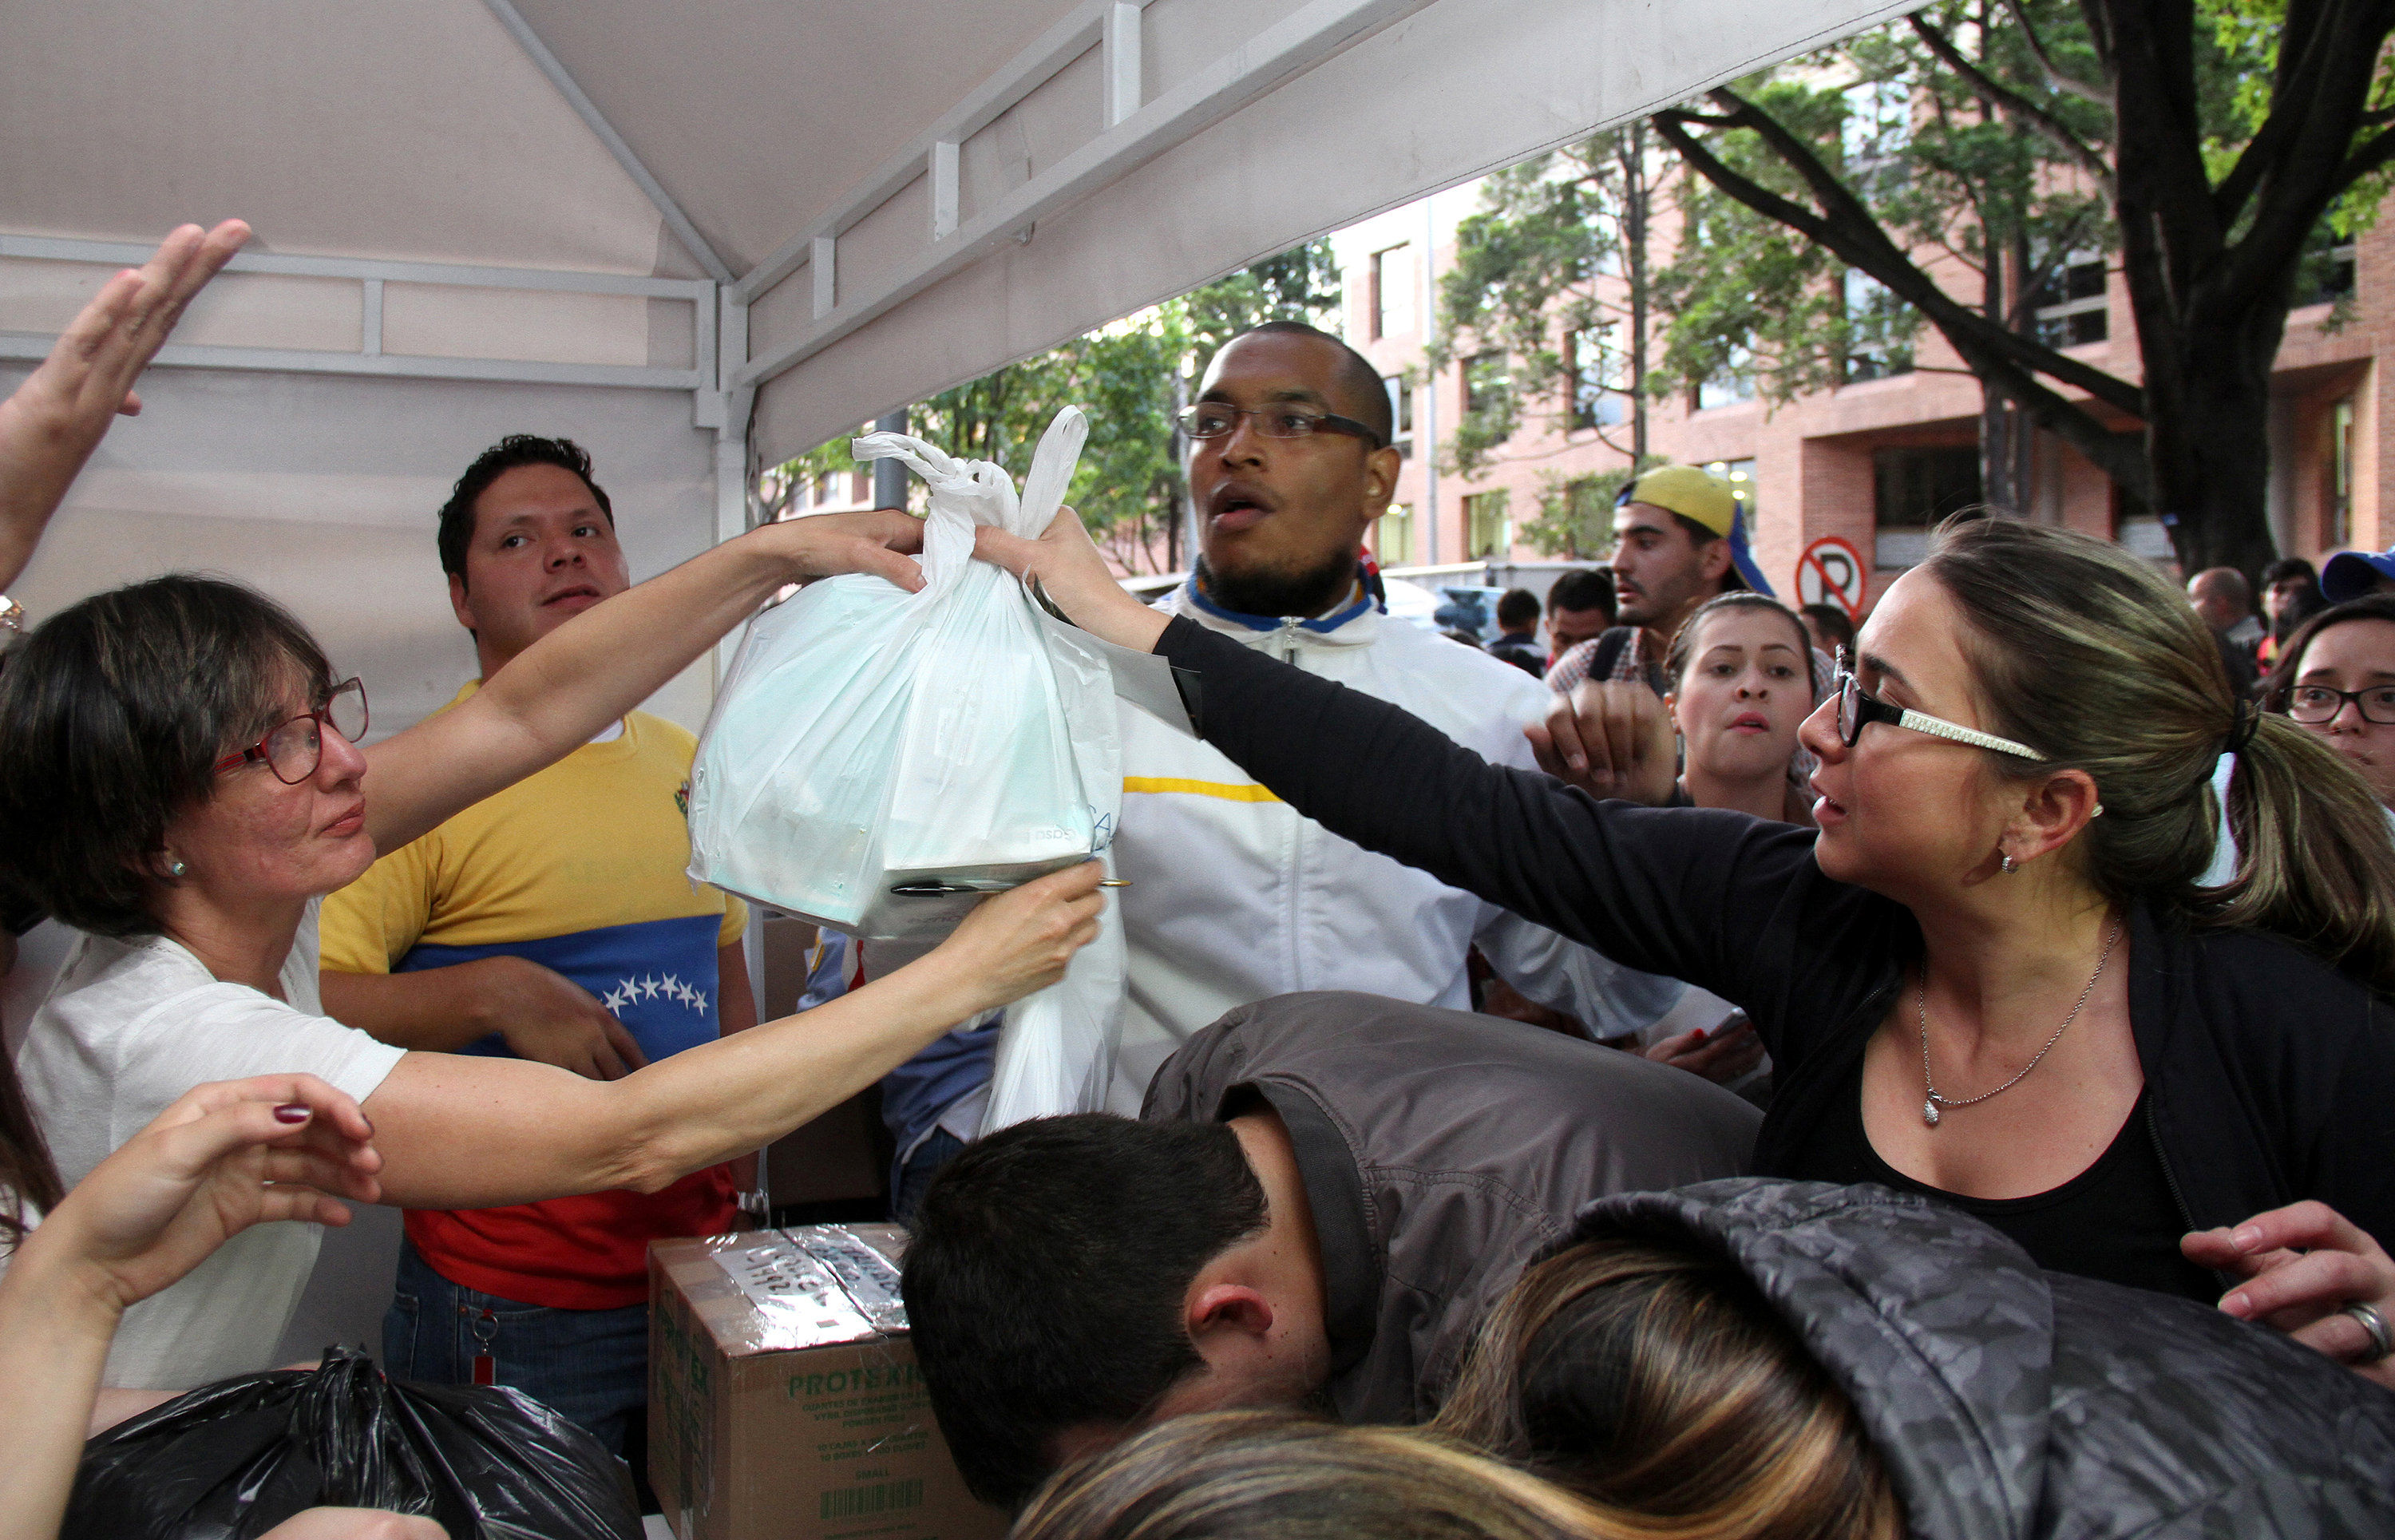 People deliver medicine and medical supplies that will be taken by Lilian Tintori, wife of imprisoned Venezuelan opposition leader Leopoldo Lopez, to Venezuela, in Bogota, Colombia, May 19, 2016. REUTERS/Felipe Caicedo EDITORIAL USE ONLY. NO RESALES. NO ARCHIVE.